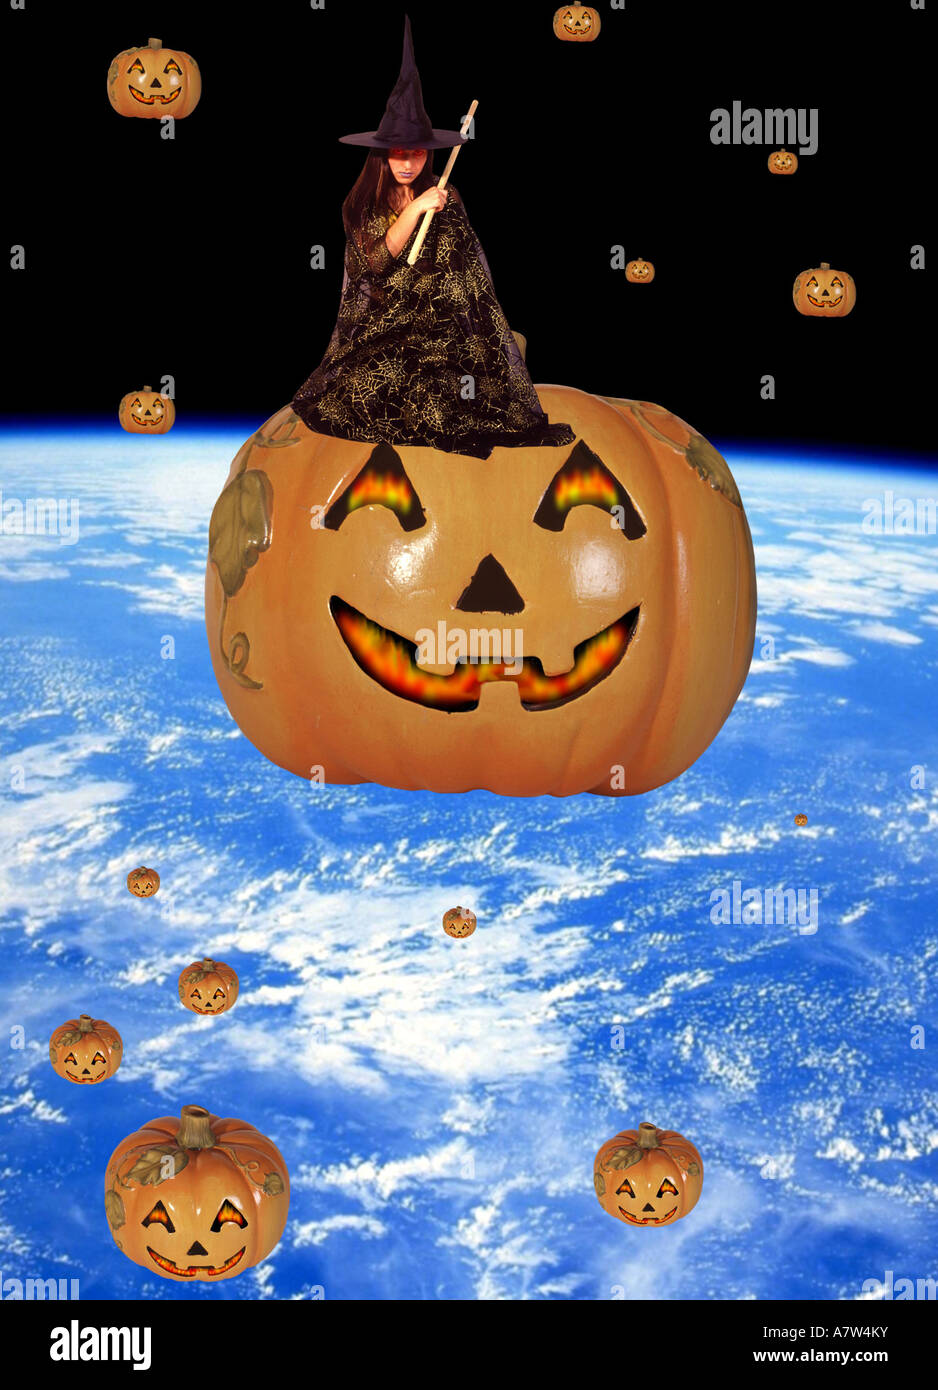 Halloween pumpkins orbiting the earth, young witch sitting on one - Stock Image